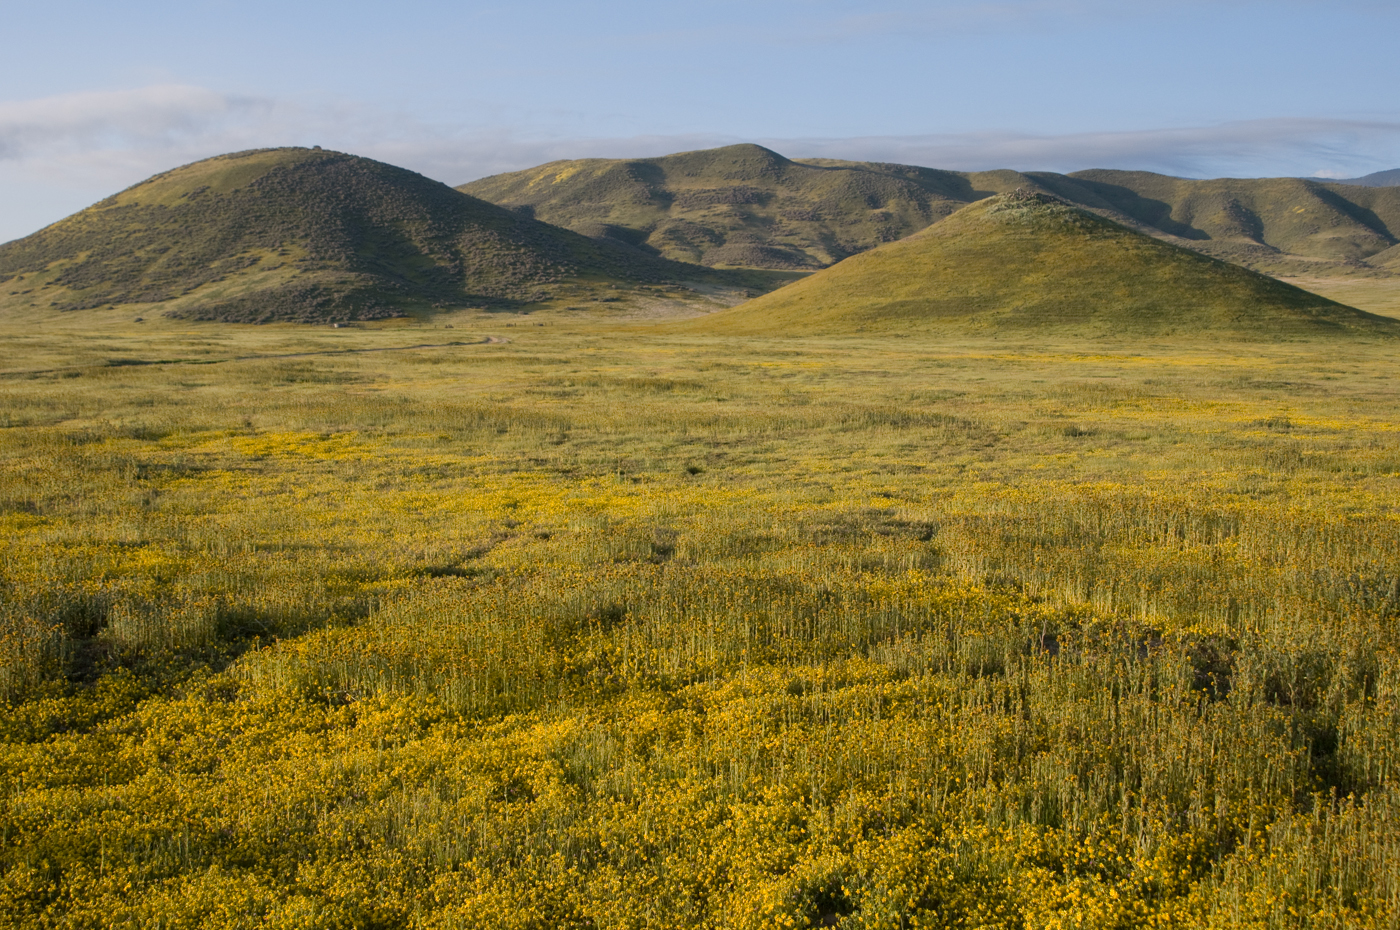 Carrizo Plain in bloom. Photo by Stuart Wilson.